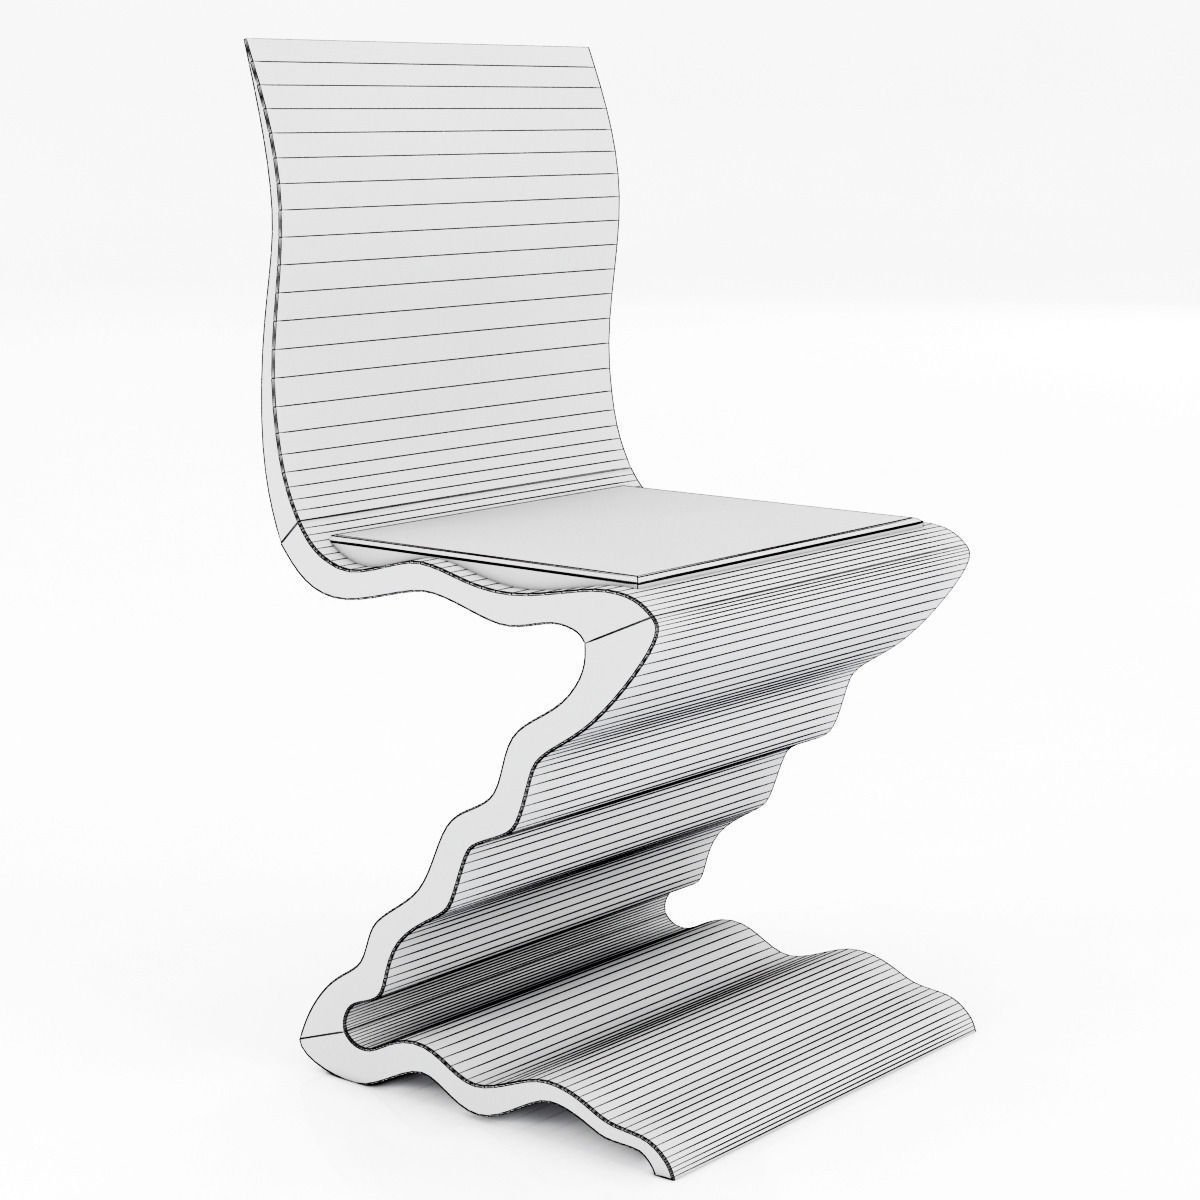 ... zig zag chair 788 by garry knox bennett 3d model max obj 3ds fbx mtl 5  sc 1 st  CGTrader & 3D Zig Zag Chair 788 by Garry Knox Bennett | CGTrader